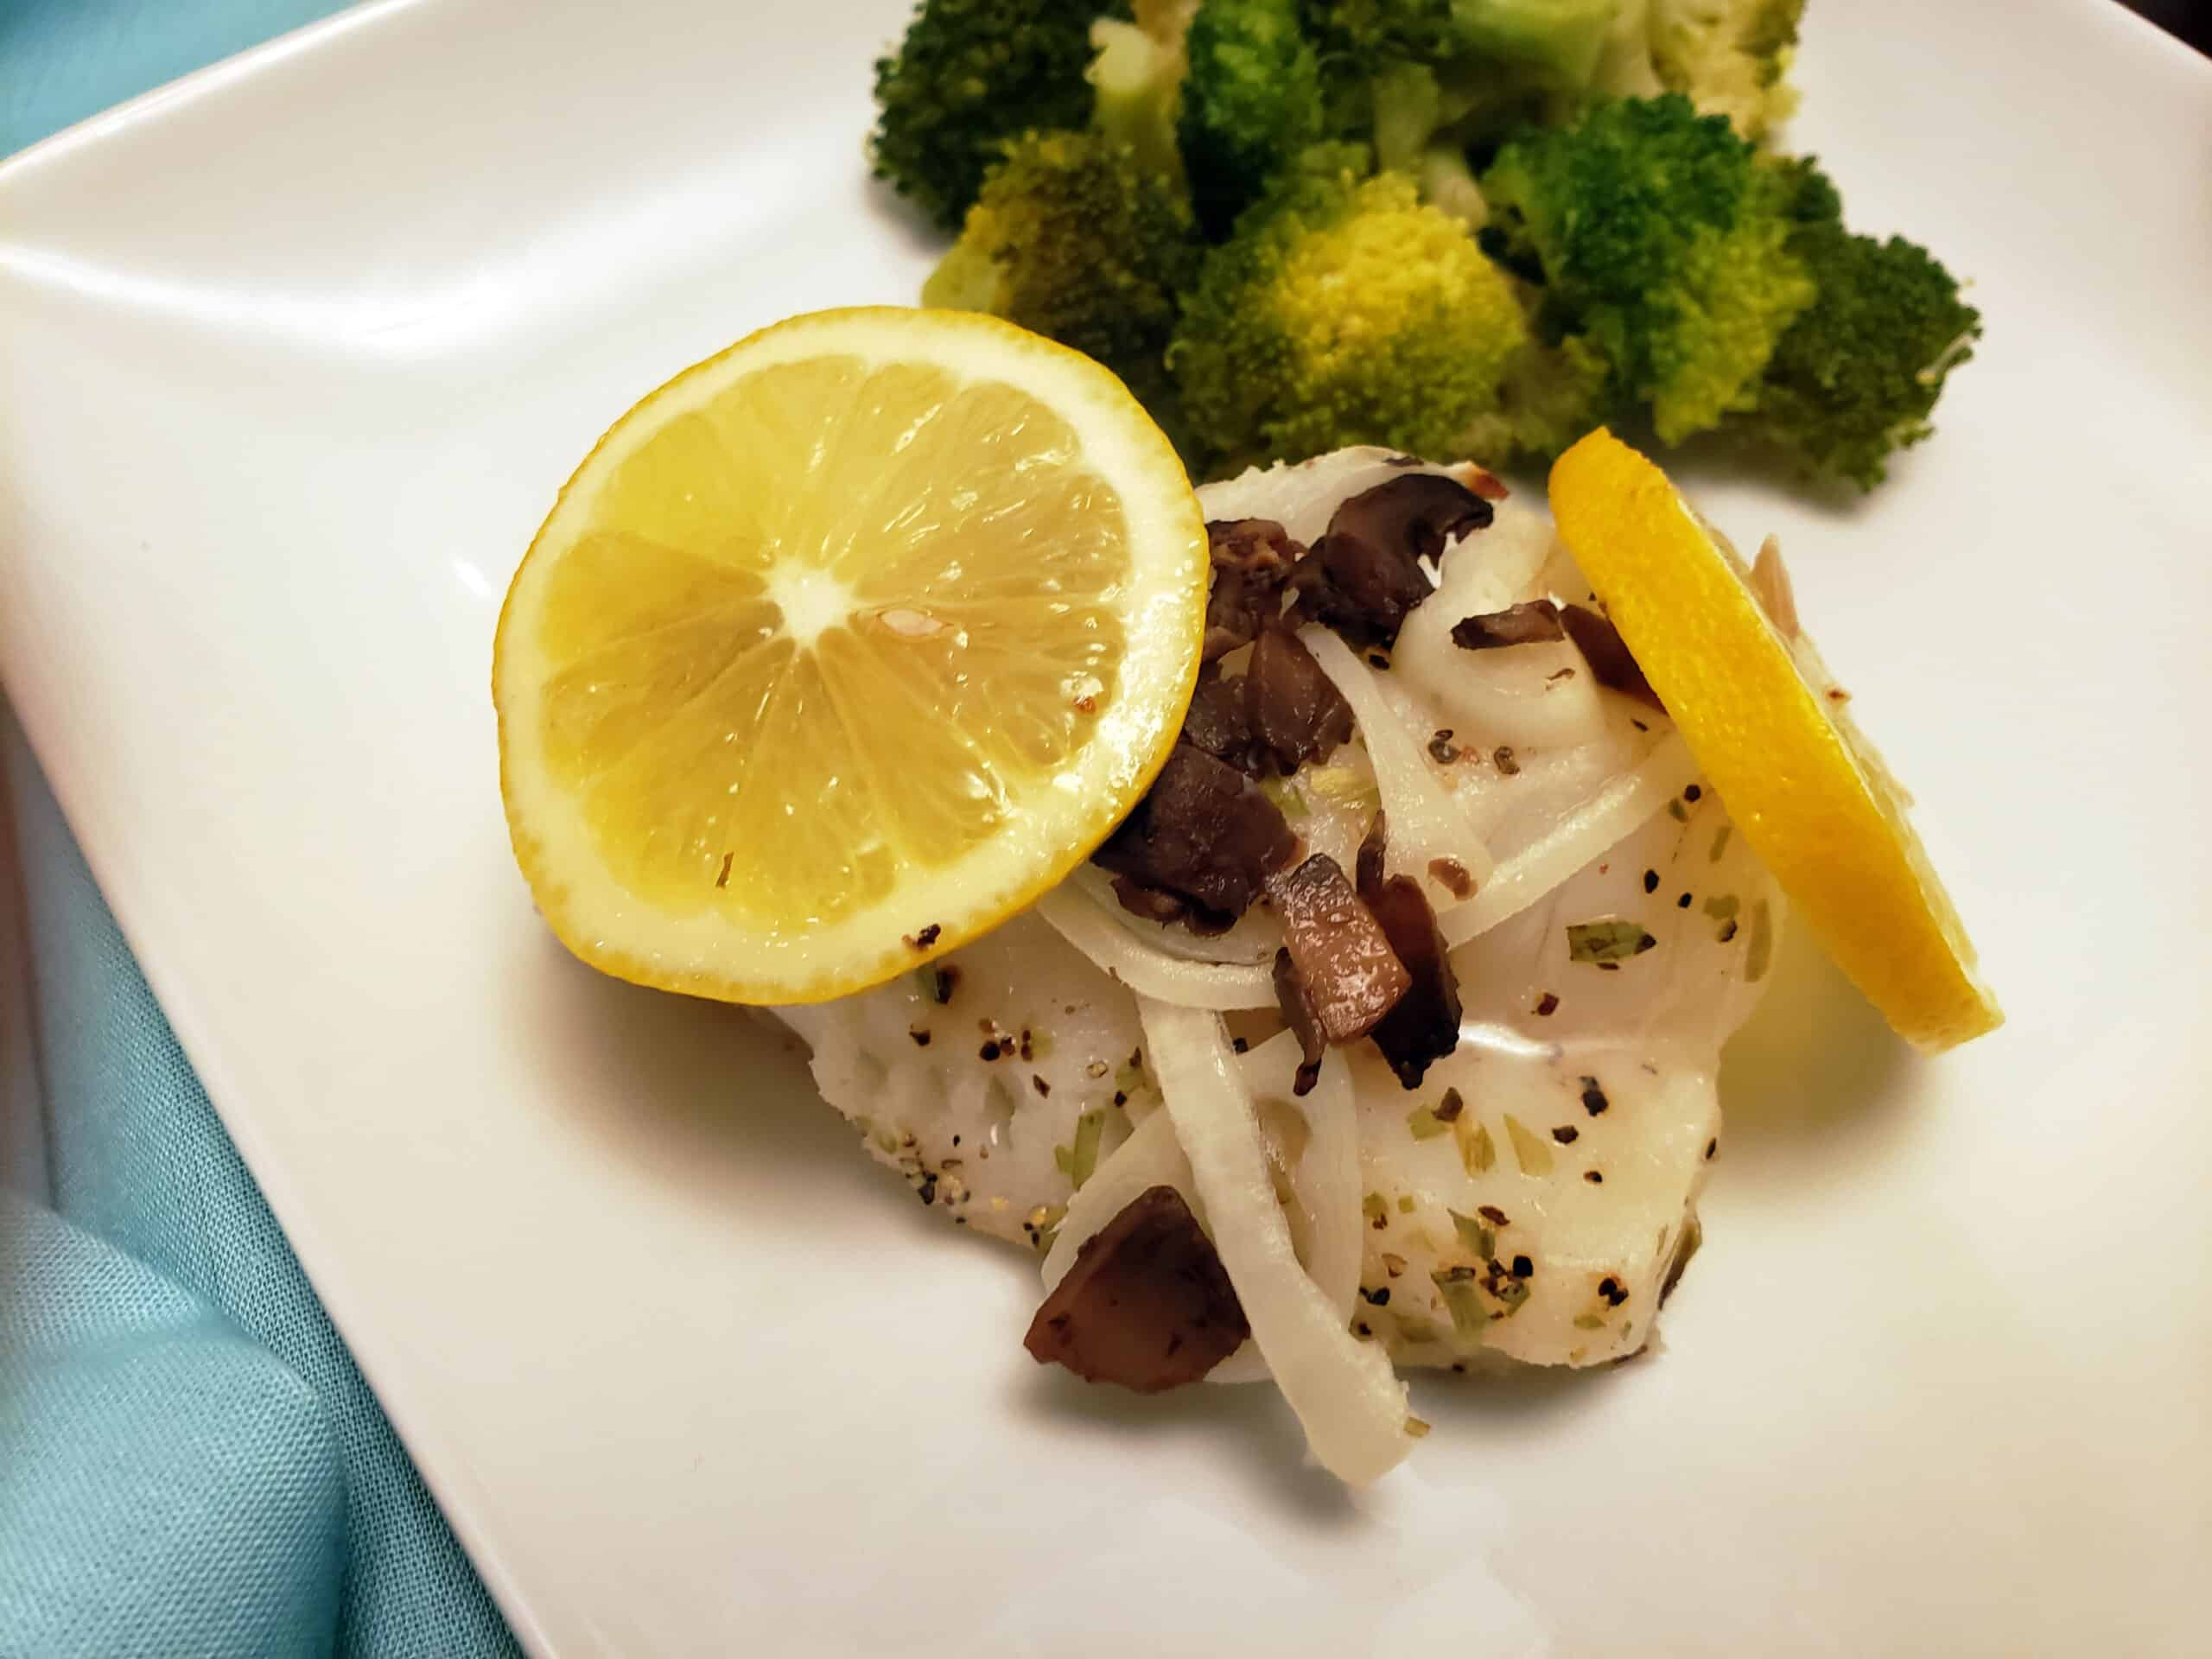 baked tilapia with lemon tarragon sauce om white plate with broccoli